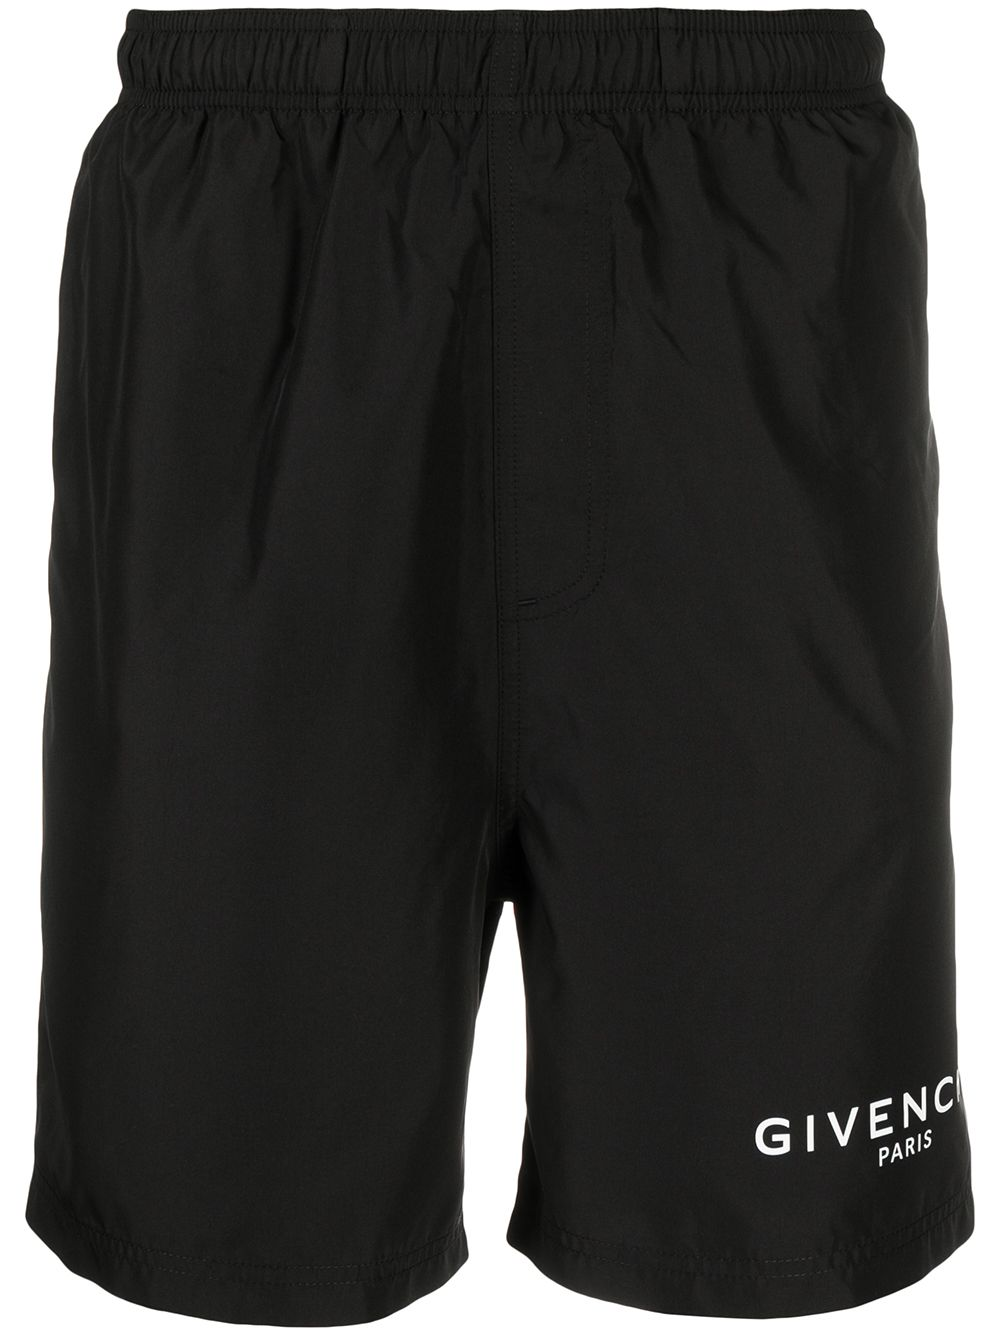 Black swimming trunks featuring elasticated waistband and white Givenchy logo  GIVENCHY |  | BMA00J1Y5N001